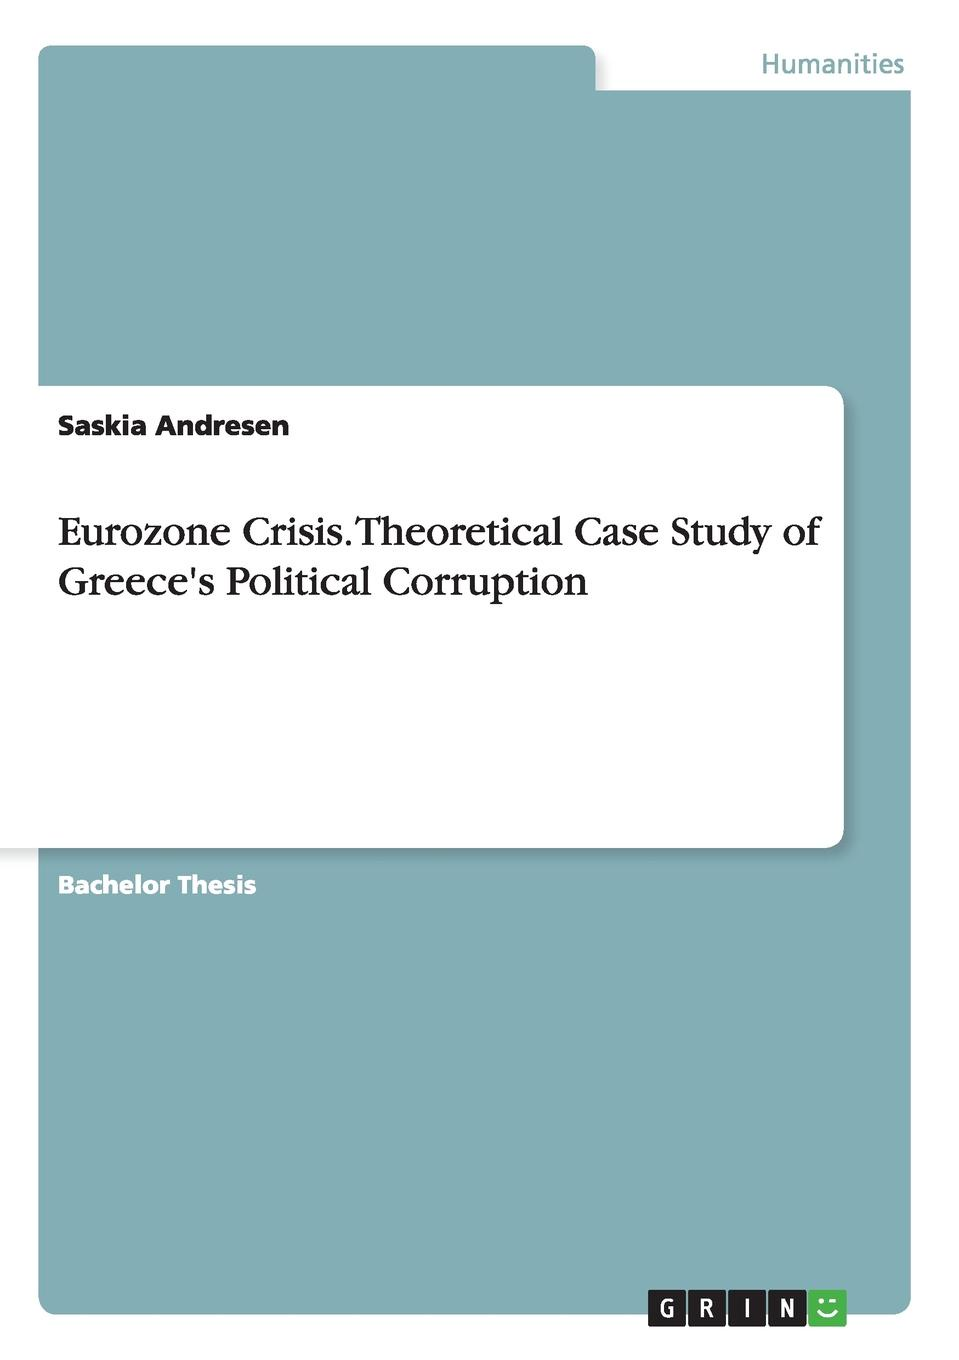 Saskia Andresen Eurozone Crisis. Theoretical Case Study of Greece.s Political Corruption jonathan wright the ambassadors from ancient greece to the nation state